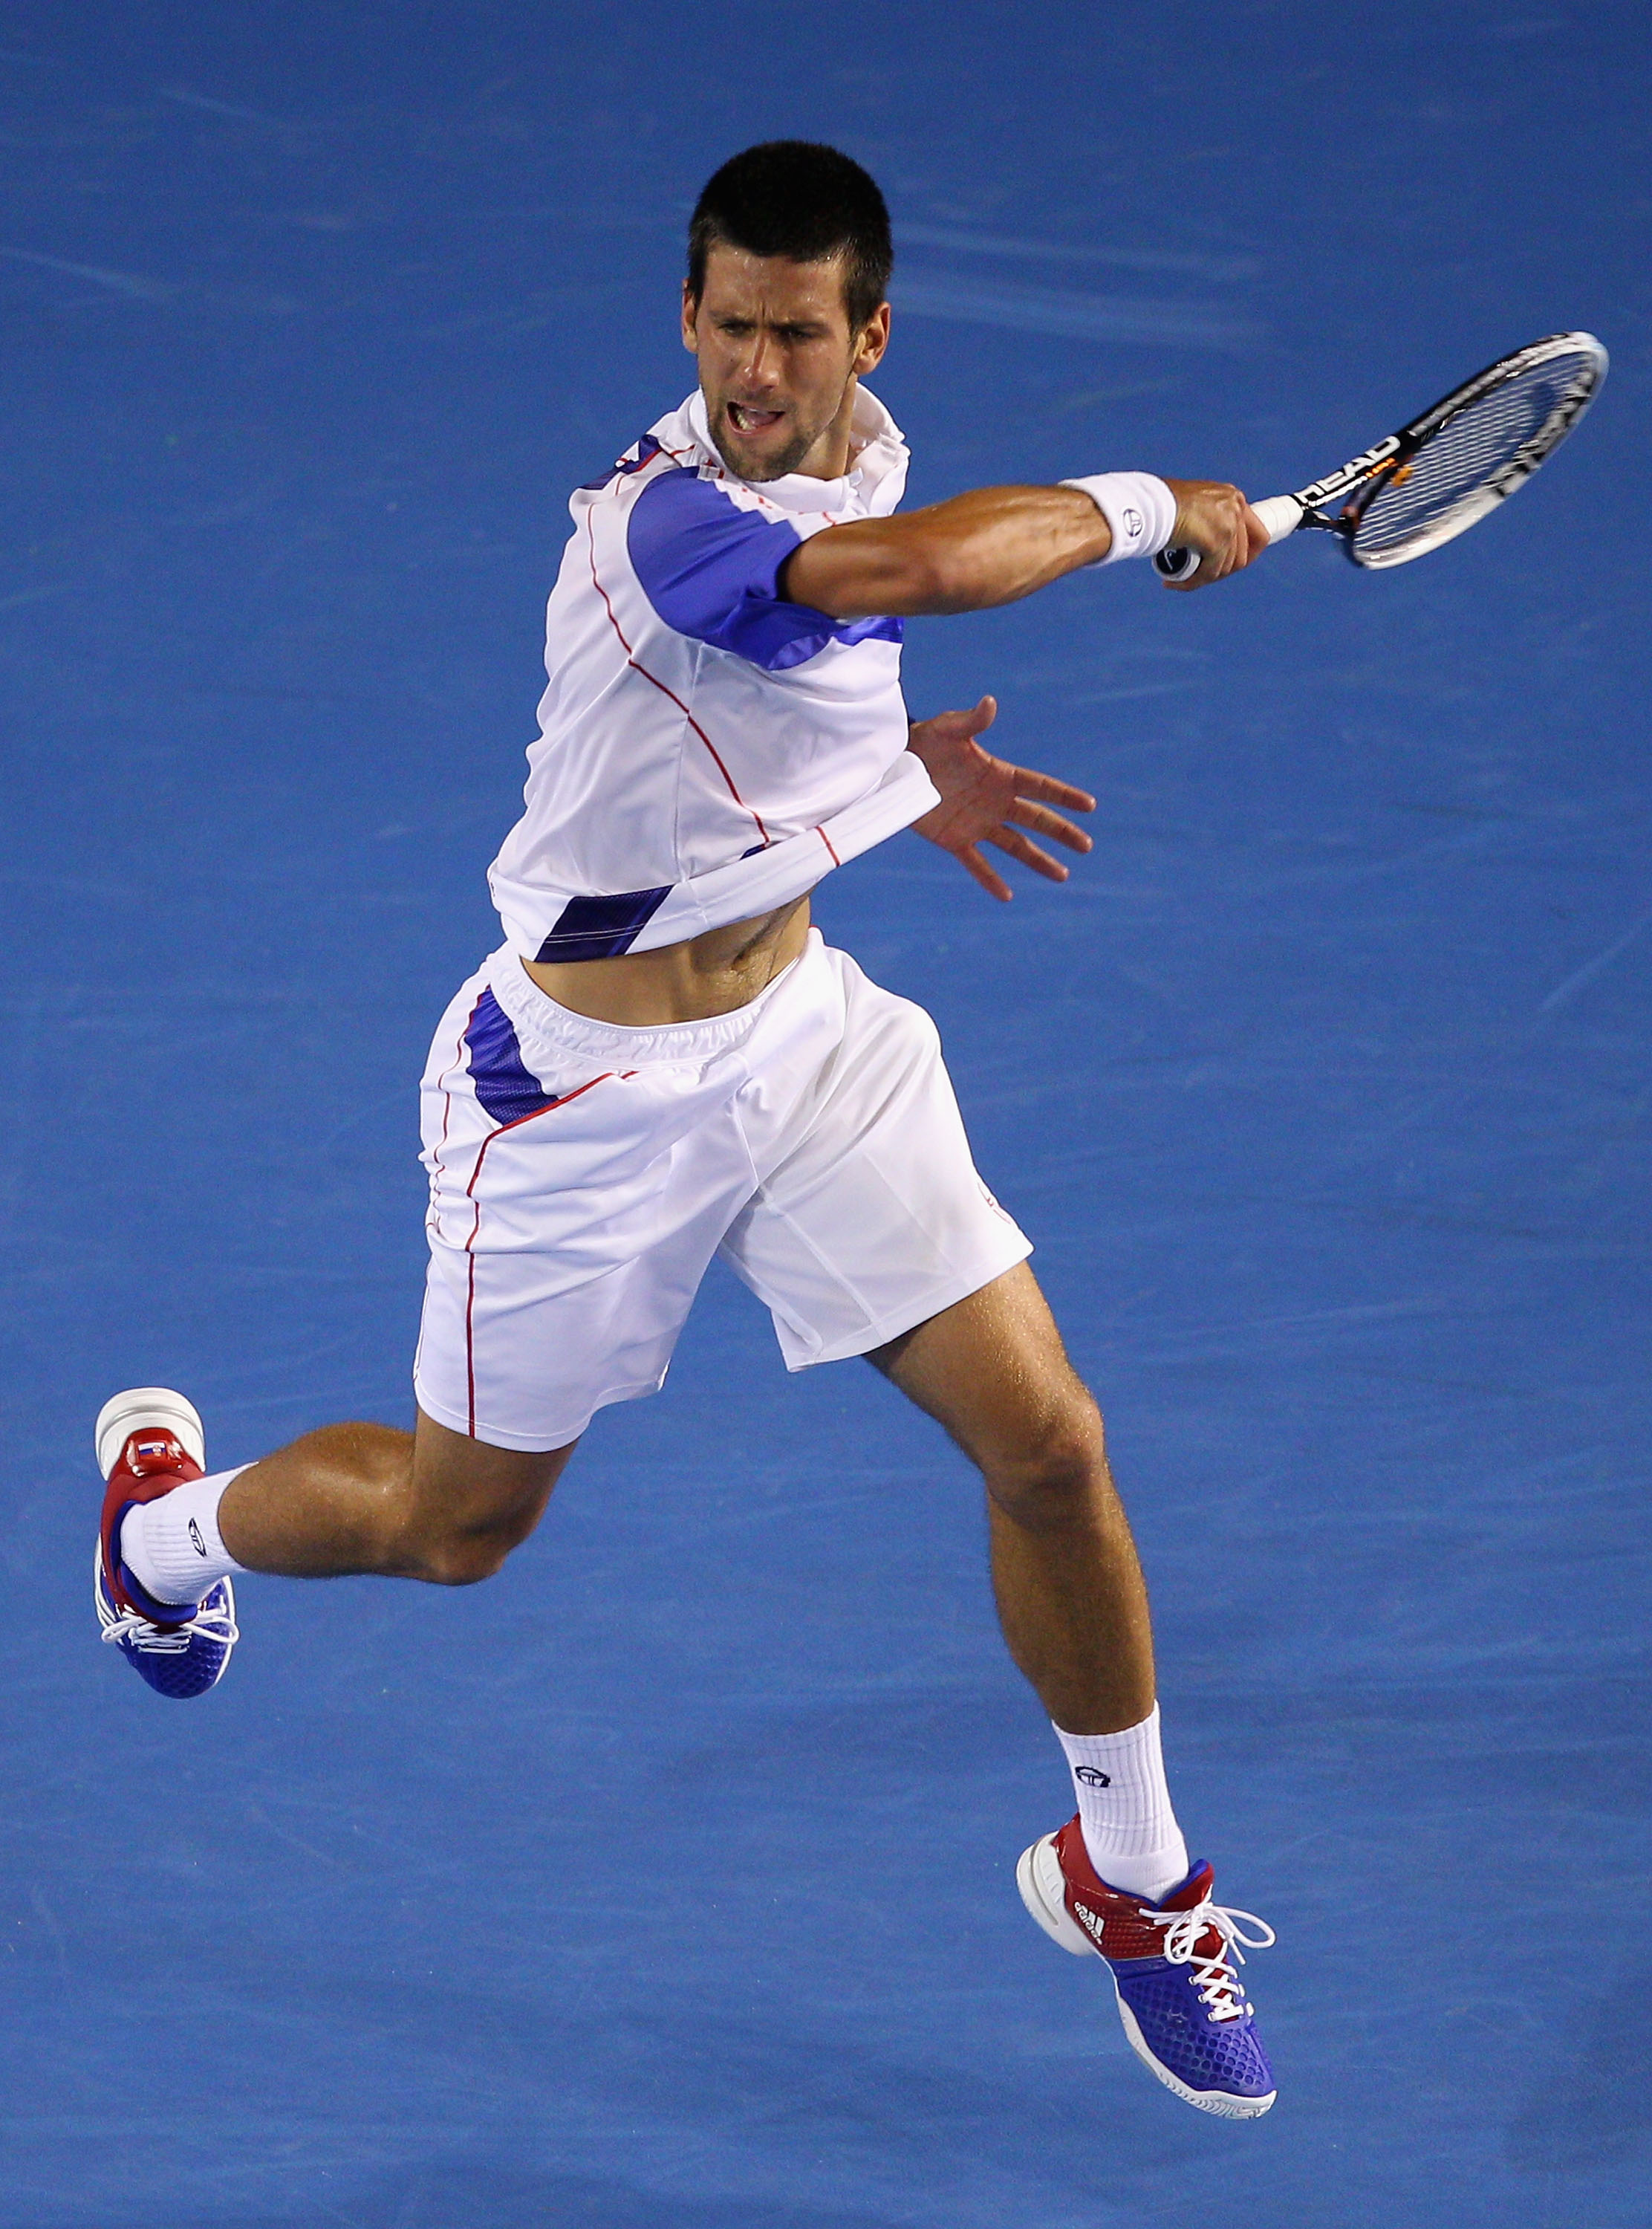 MELBOURNE, AUSTRALIA - JANUARY 25:  Novak Djokovic of Serbia plays a forehand in his quarterfinal match against Tomas Berdych of the Czech Republic  during day nine of the 2011 Australian Open at Melbourne Park on January 25, 2011 in Melbourne, Australia.